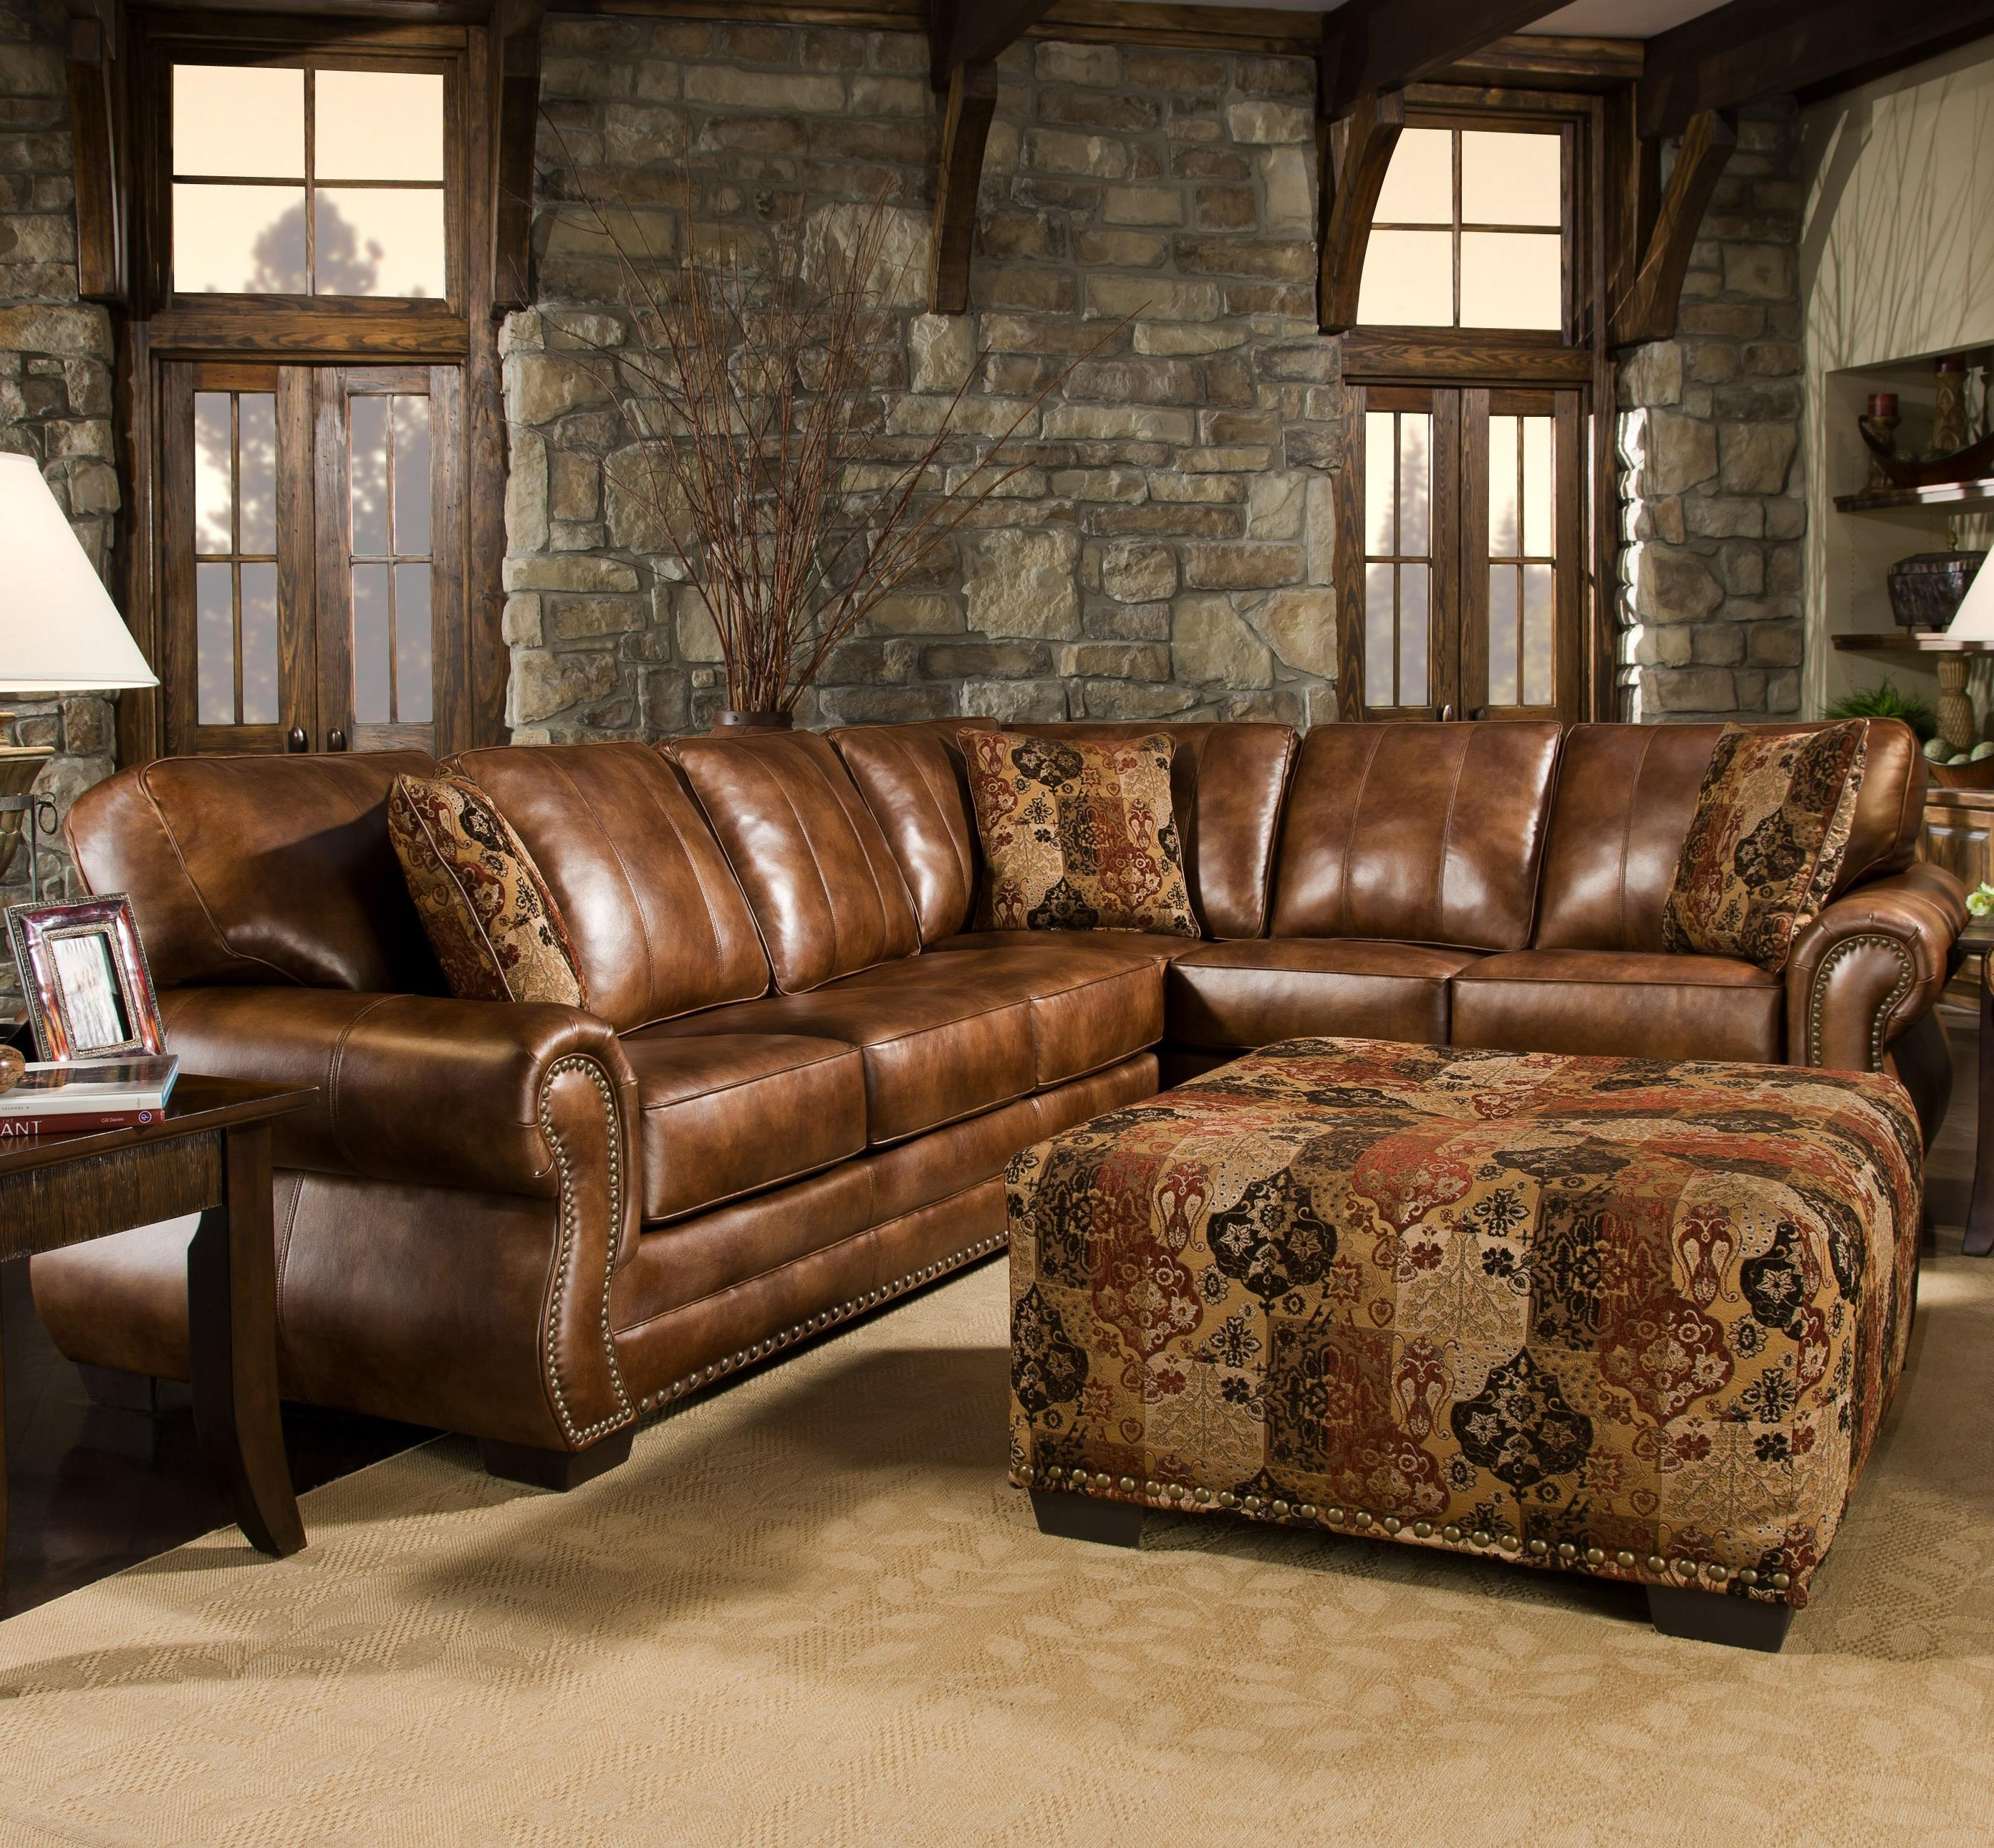 Saddle Sectional With Studs, Two Piece Sectional, Rustic, Western With Ivan Smith Sectional Sofas (Image 10 of 10)